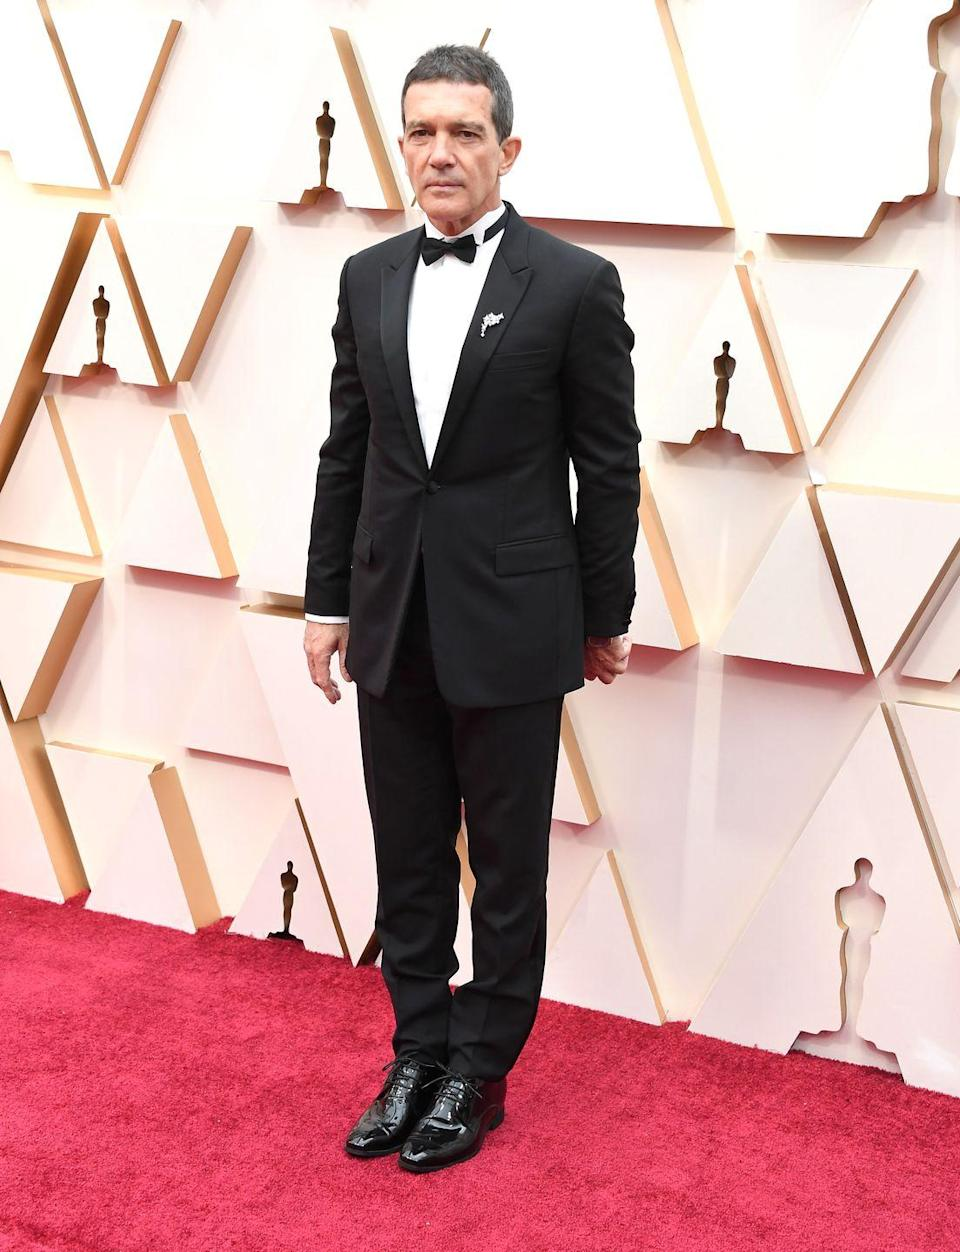 <p>Although his career has slowed down a little bit since the '90s, Banderas is still seen as an accomplished actor with some notable roles including providing the voice for Puss in Boots in the <em>Shrek</em> franchise.</p>